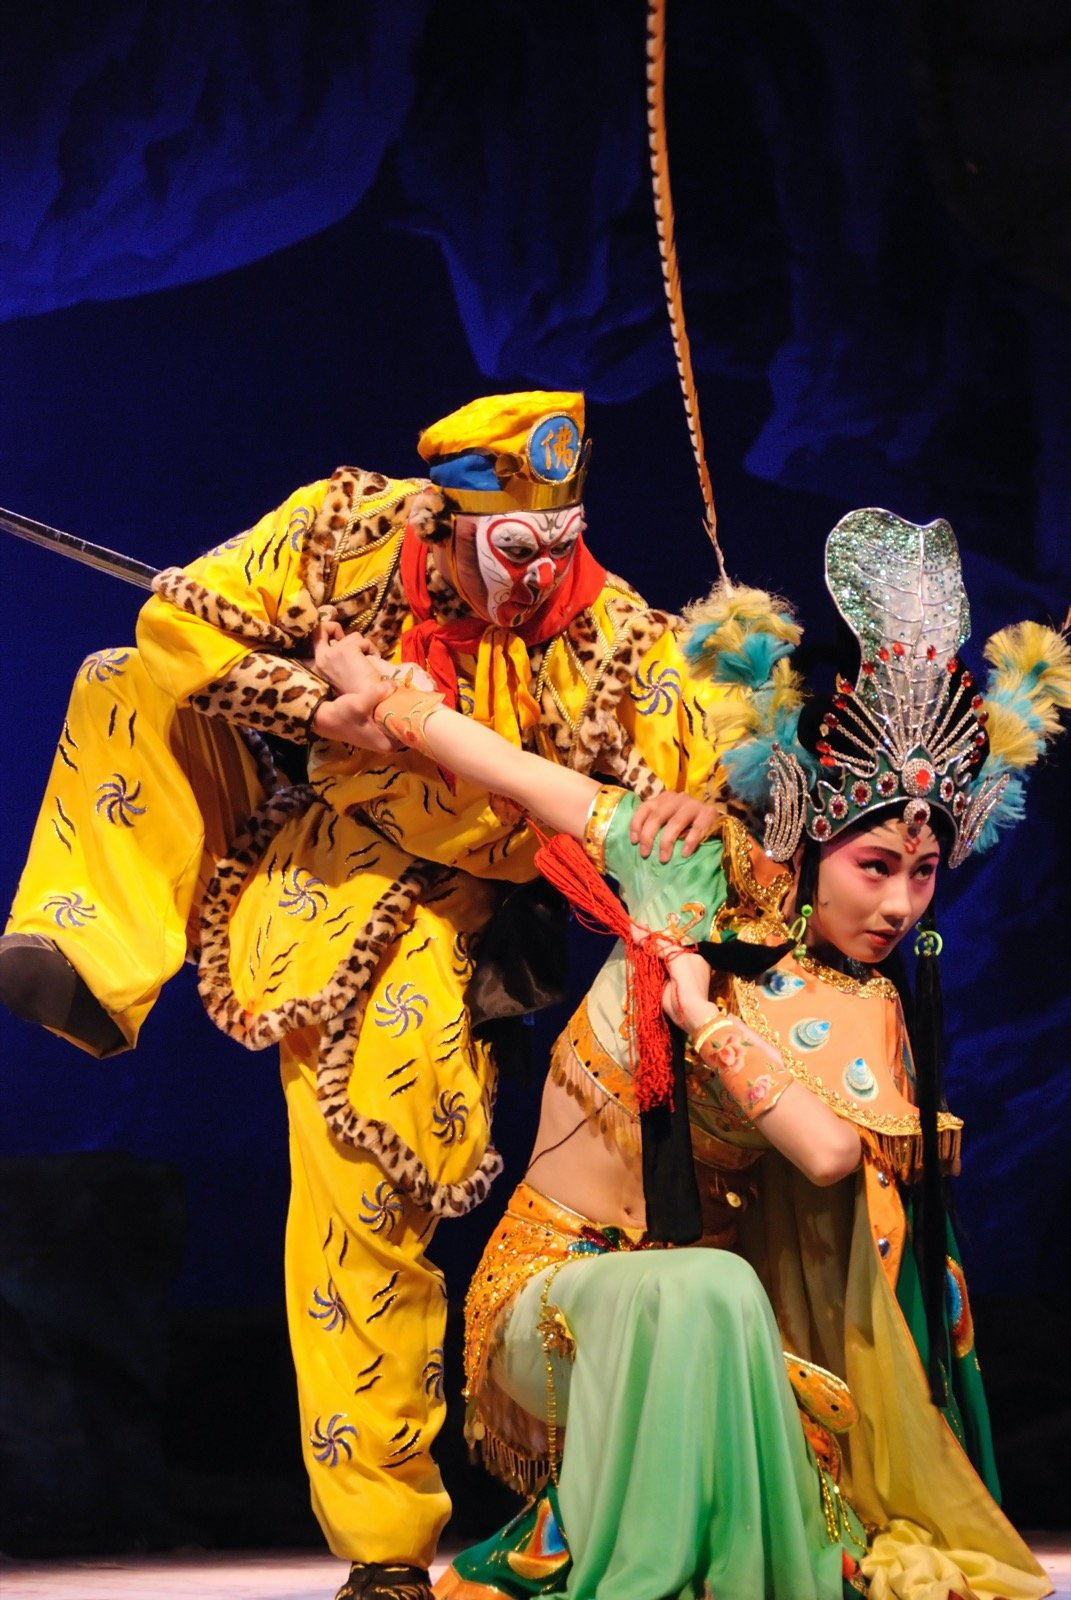 Chinese opera fight between the Monkey King and Princess Iron Fan in colorful costumes